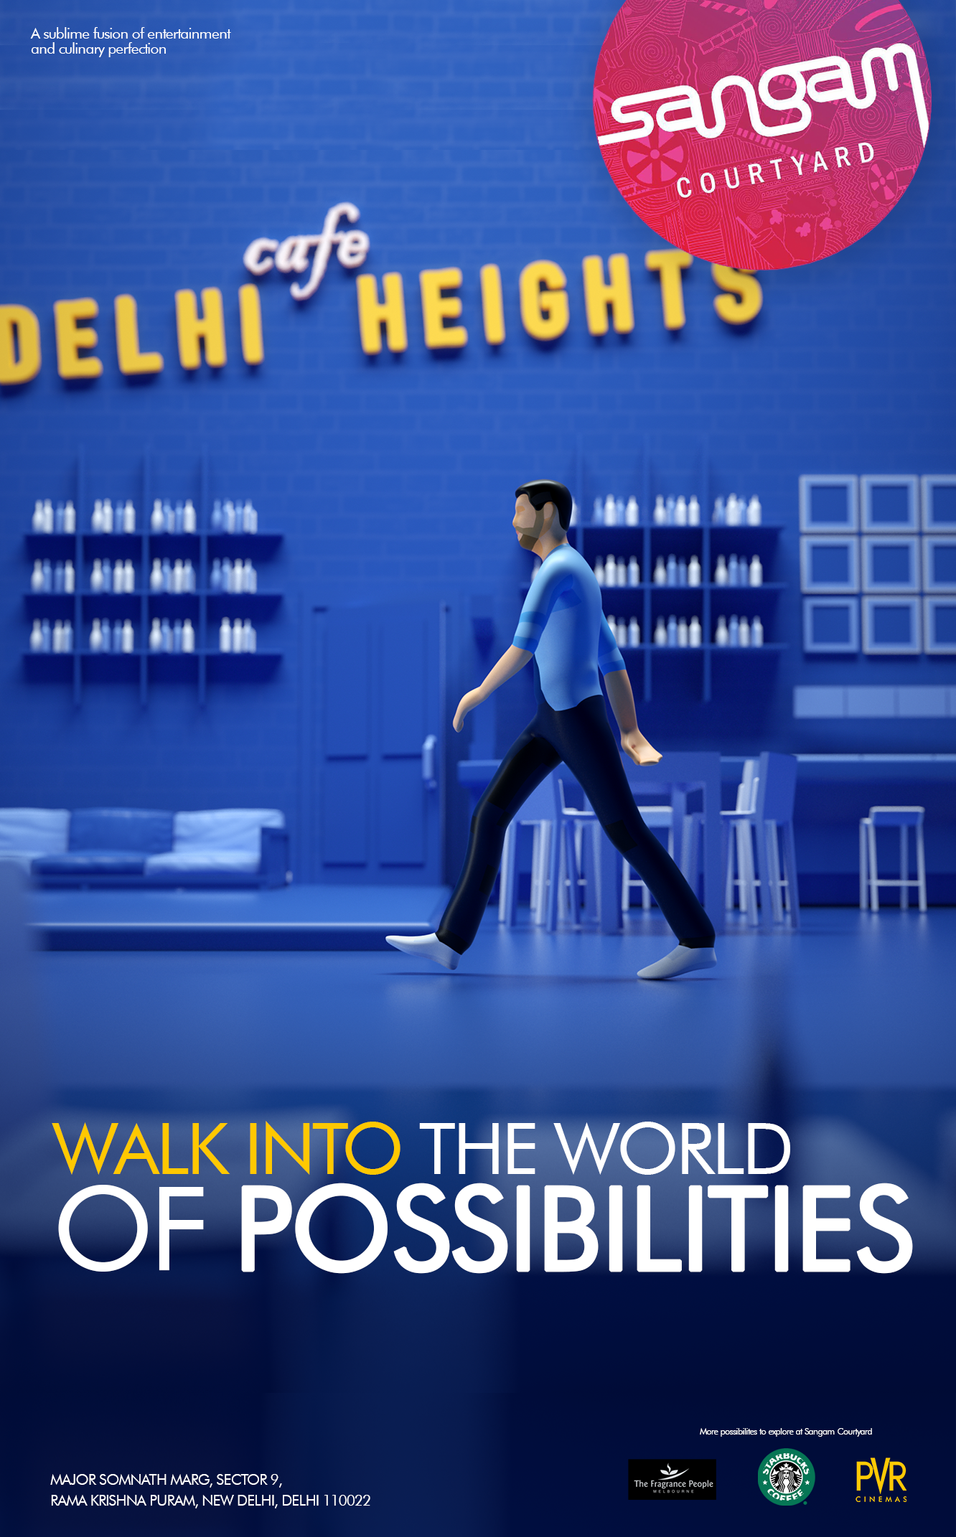 DelhiHeights_Poster.png